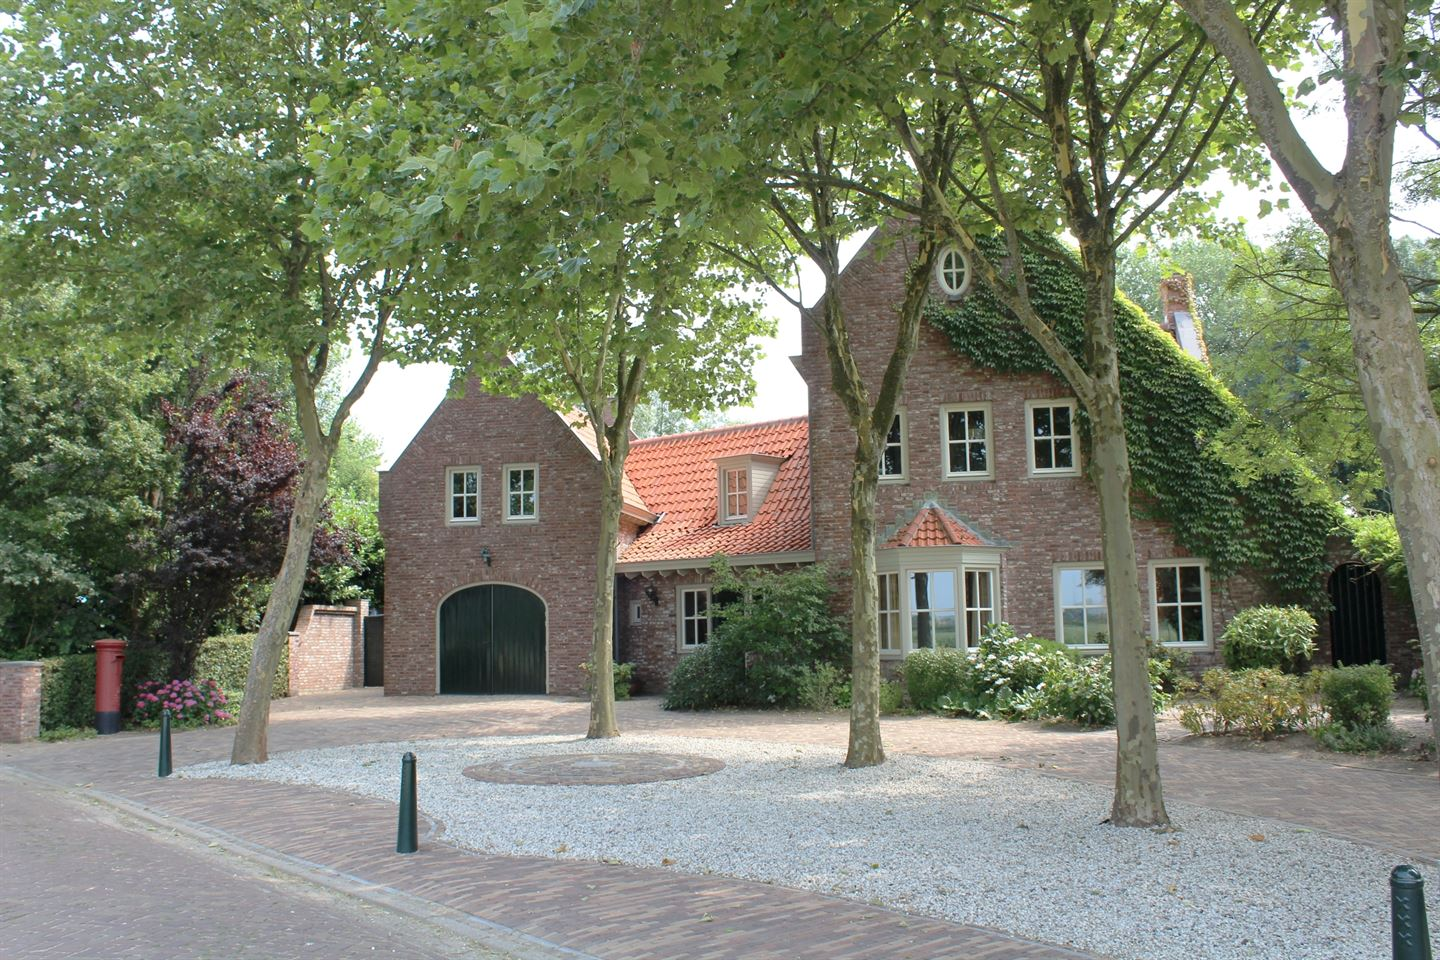 View photo 7 of Oude Schoolstraat 18 A